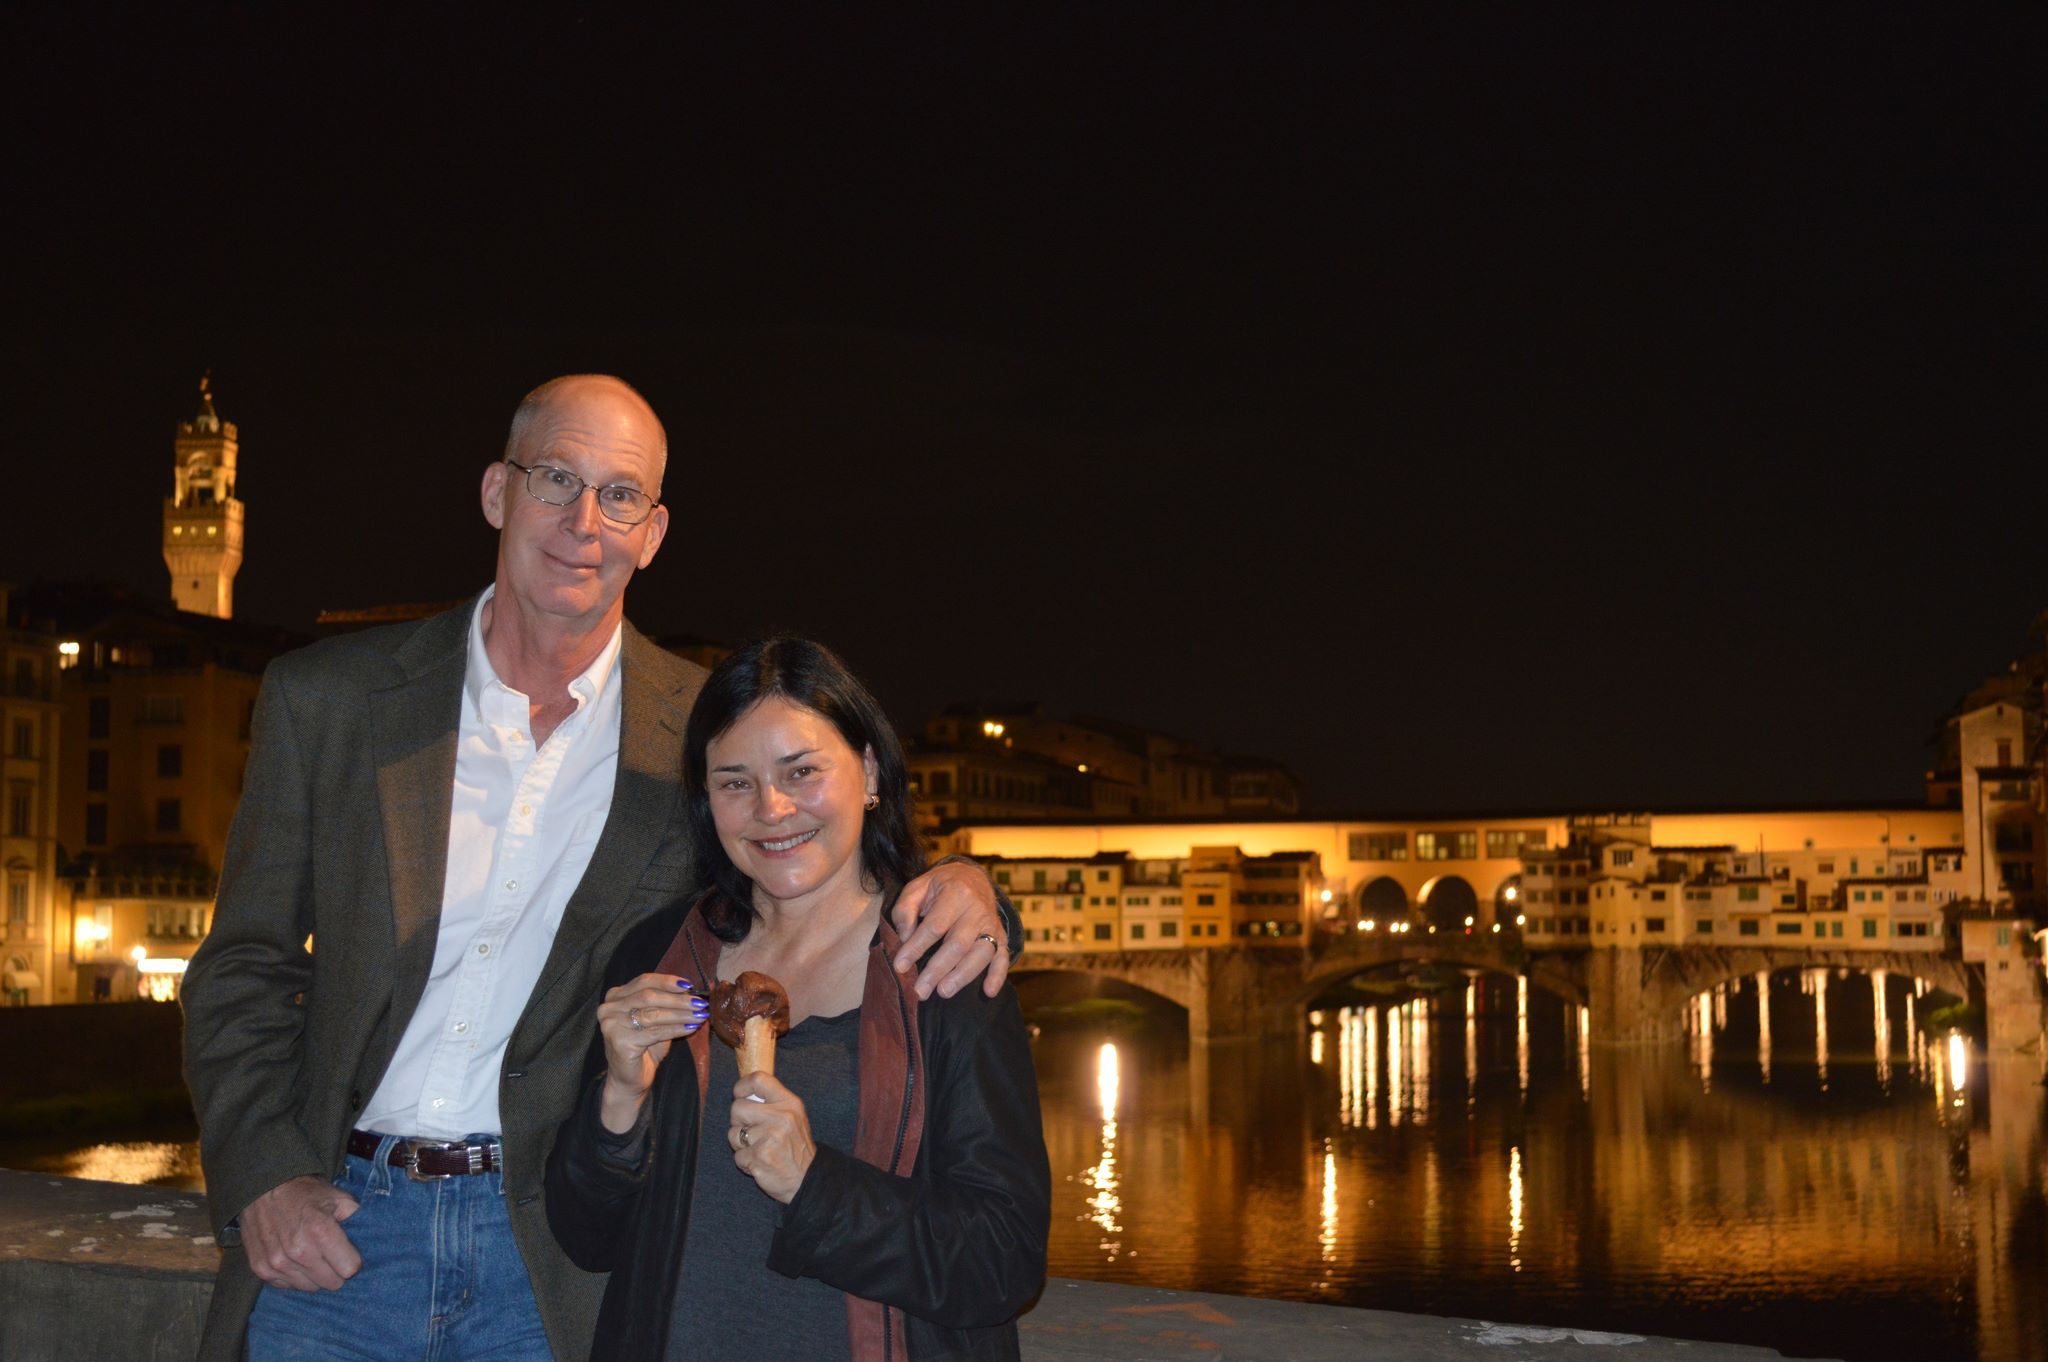 Diana Gabaldon with he husband at florence she is eating cioccolato fondente gelato.